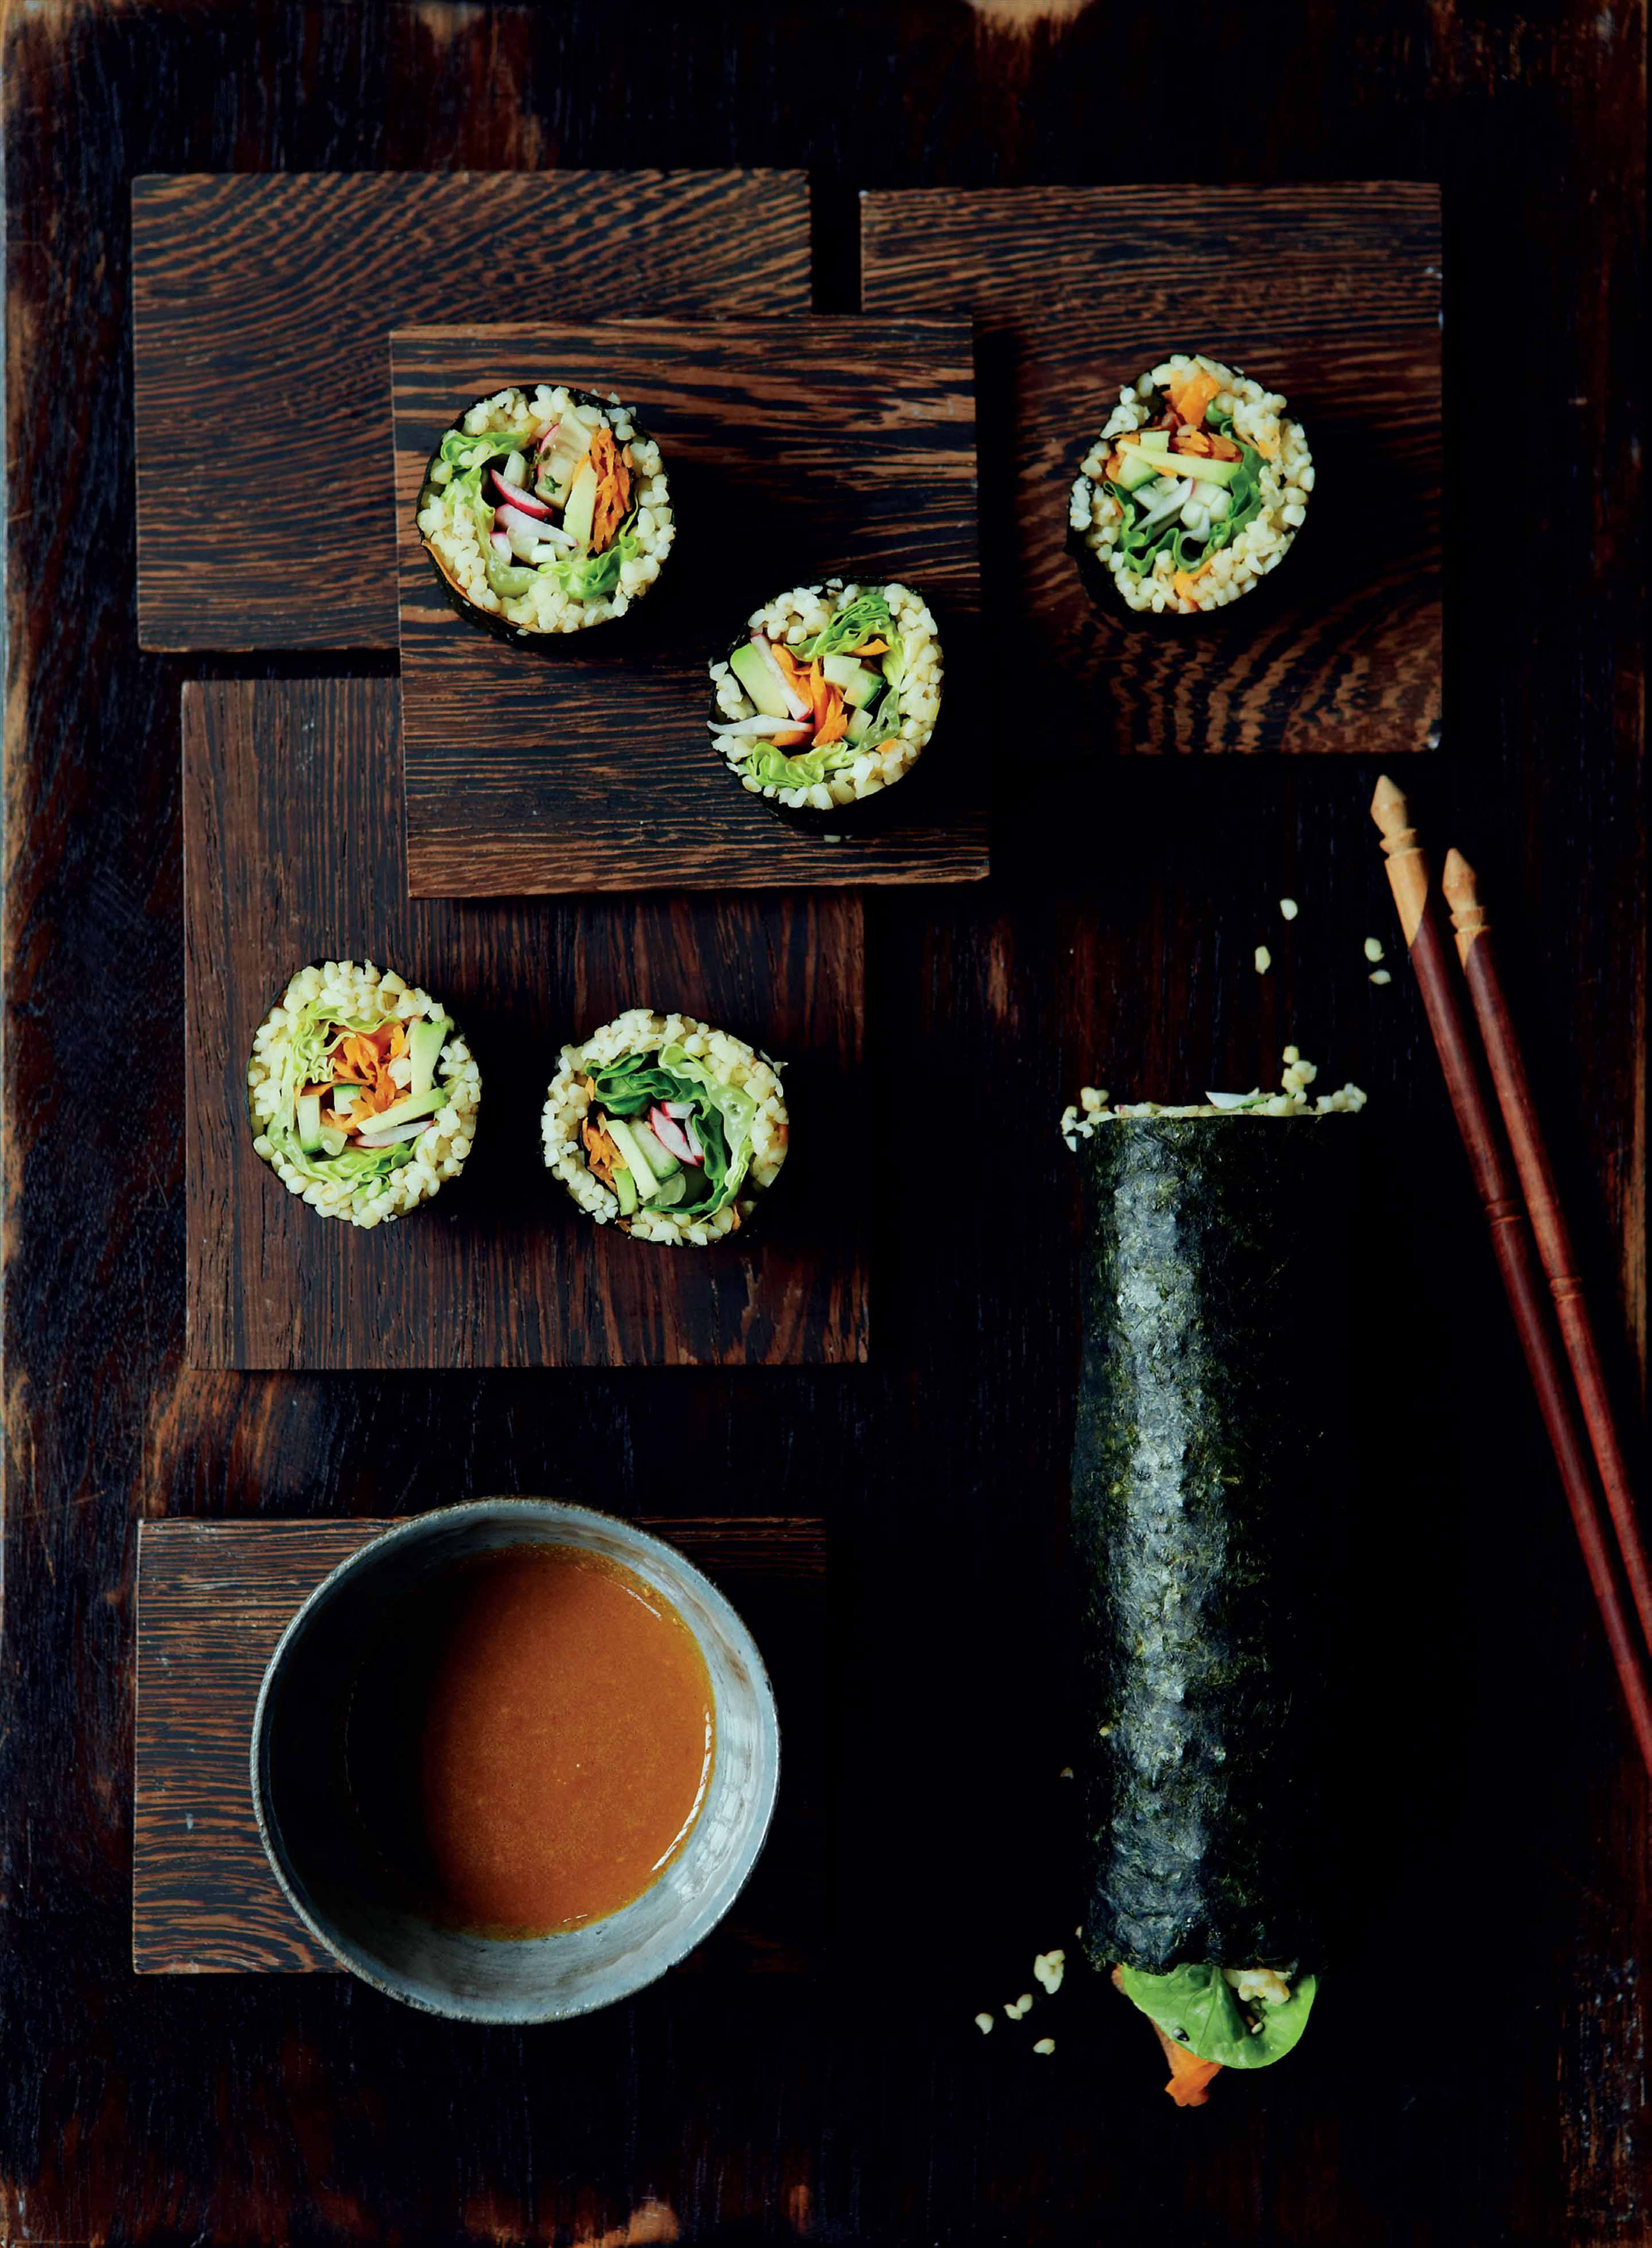 Bulghur-wheat and nori sushi with creamy wasabi dipping sauce